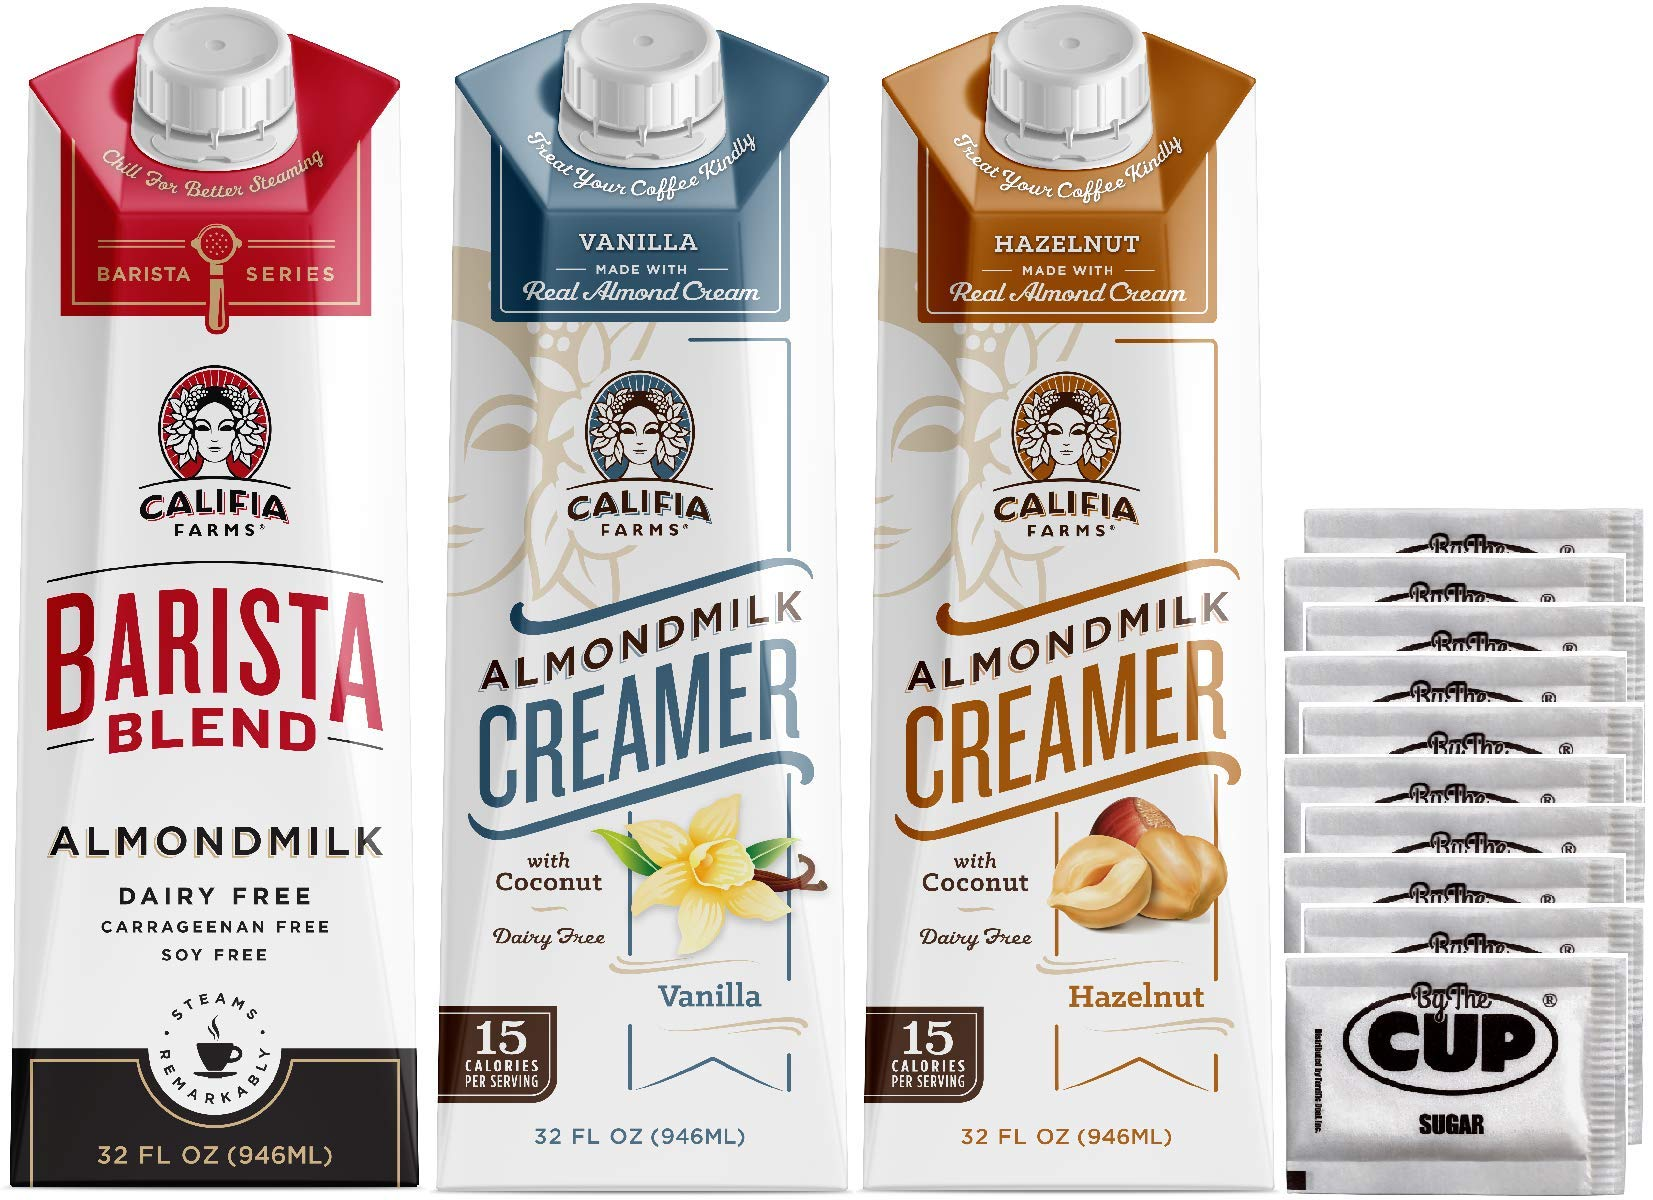 Califia Farms Coffee Creamer Variety - Vanilla, Hazelnut, and Barista Blend, Dairy Free Almond Milk, 32 Ounce Cartons - with By The Cup Sugar Packets